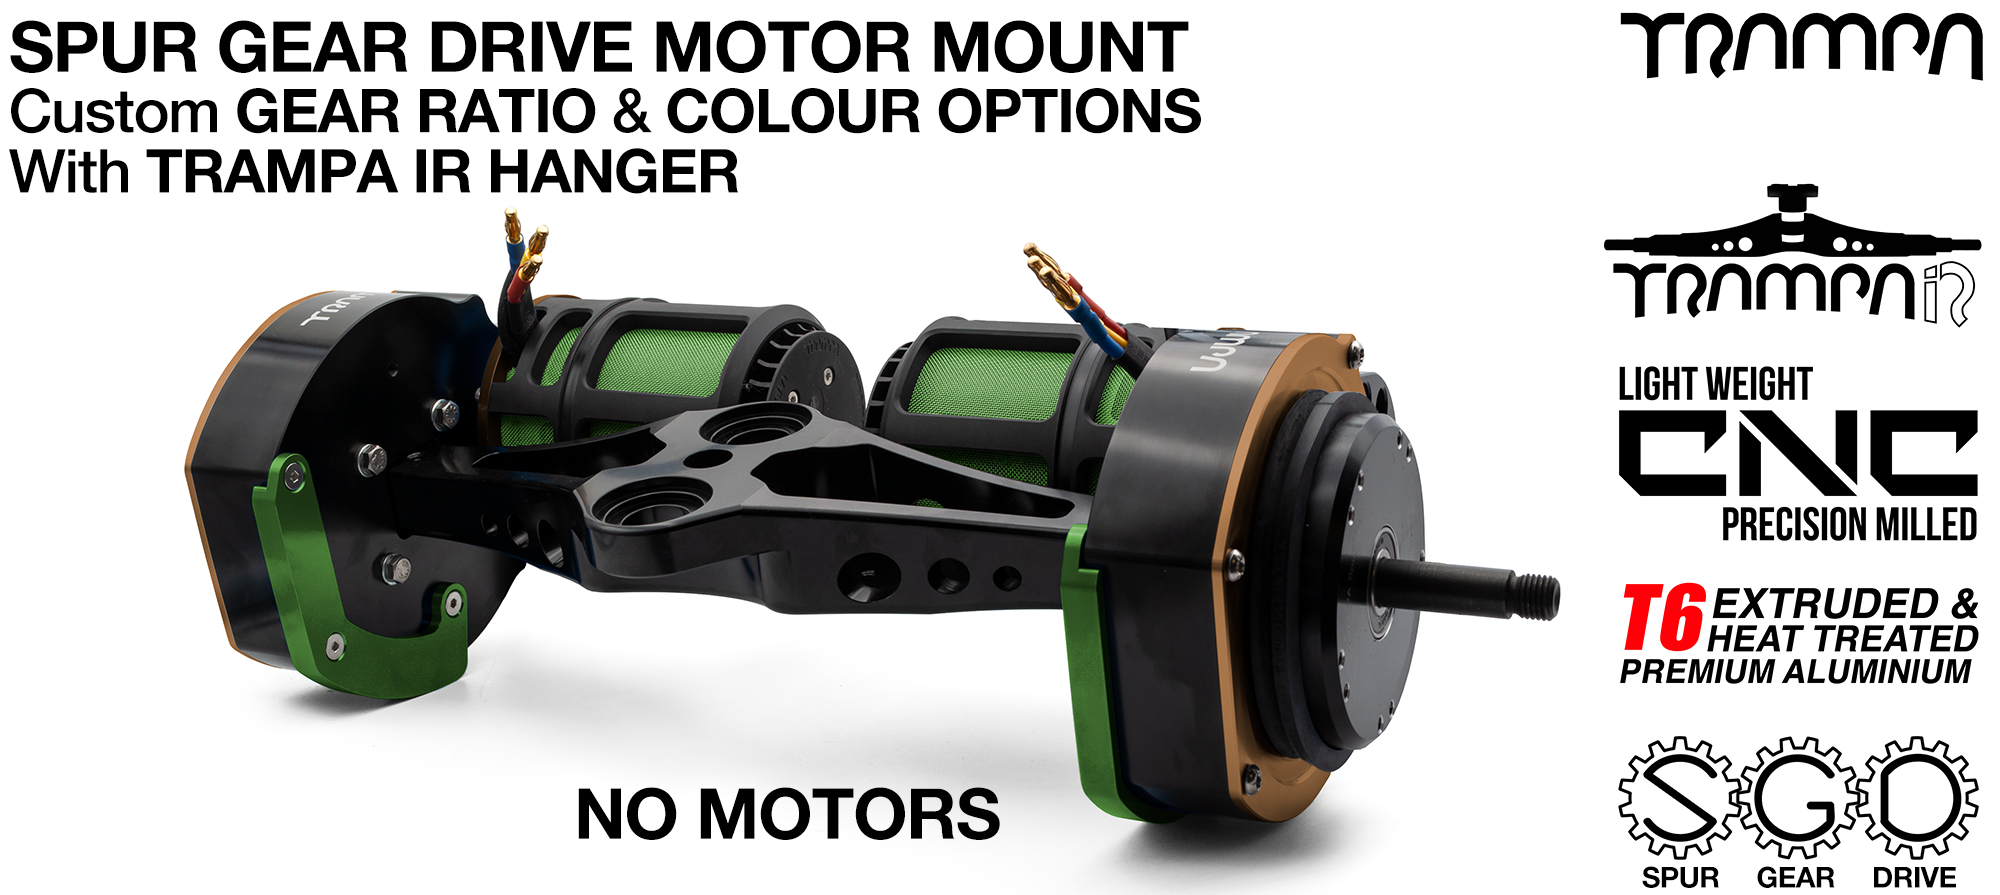 Mountainboard Spur Gear Drive TWIN with PULLEYS & FILTERS Mounted on a TRAMPA IR Hanger